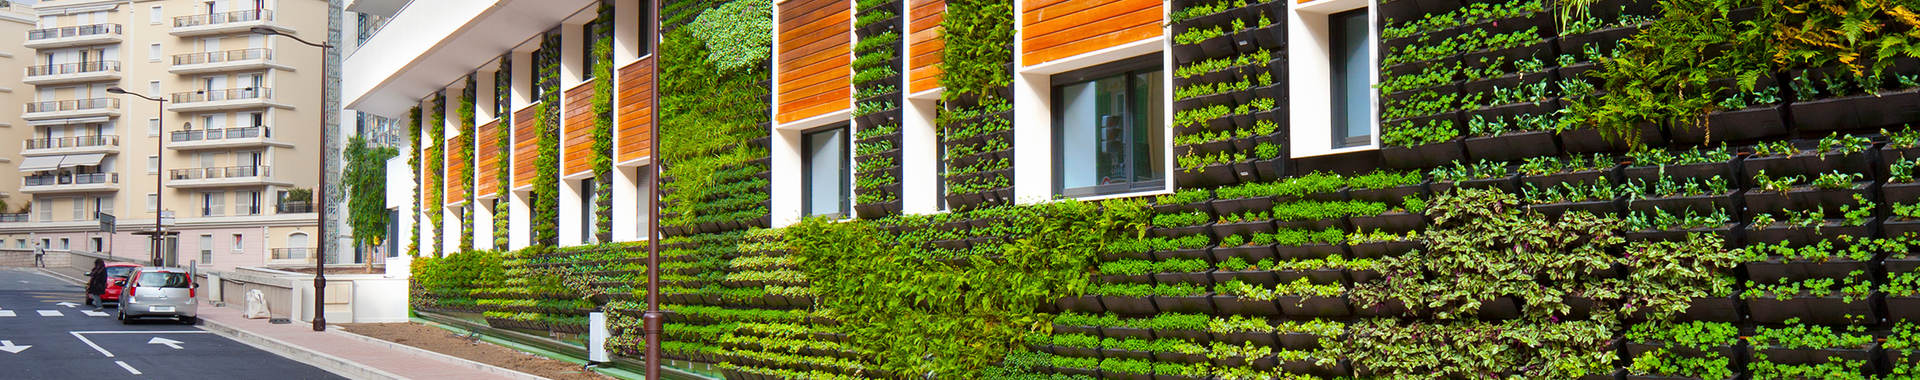 Building with garden vertical garden growing on wall